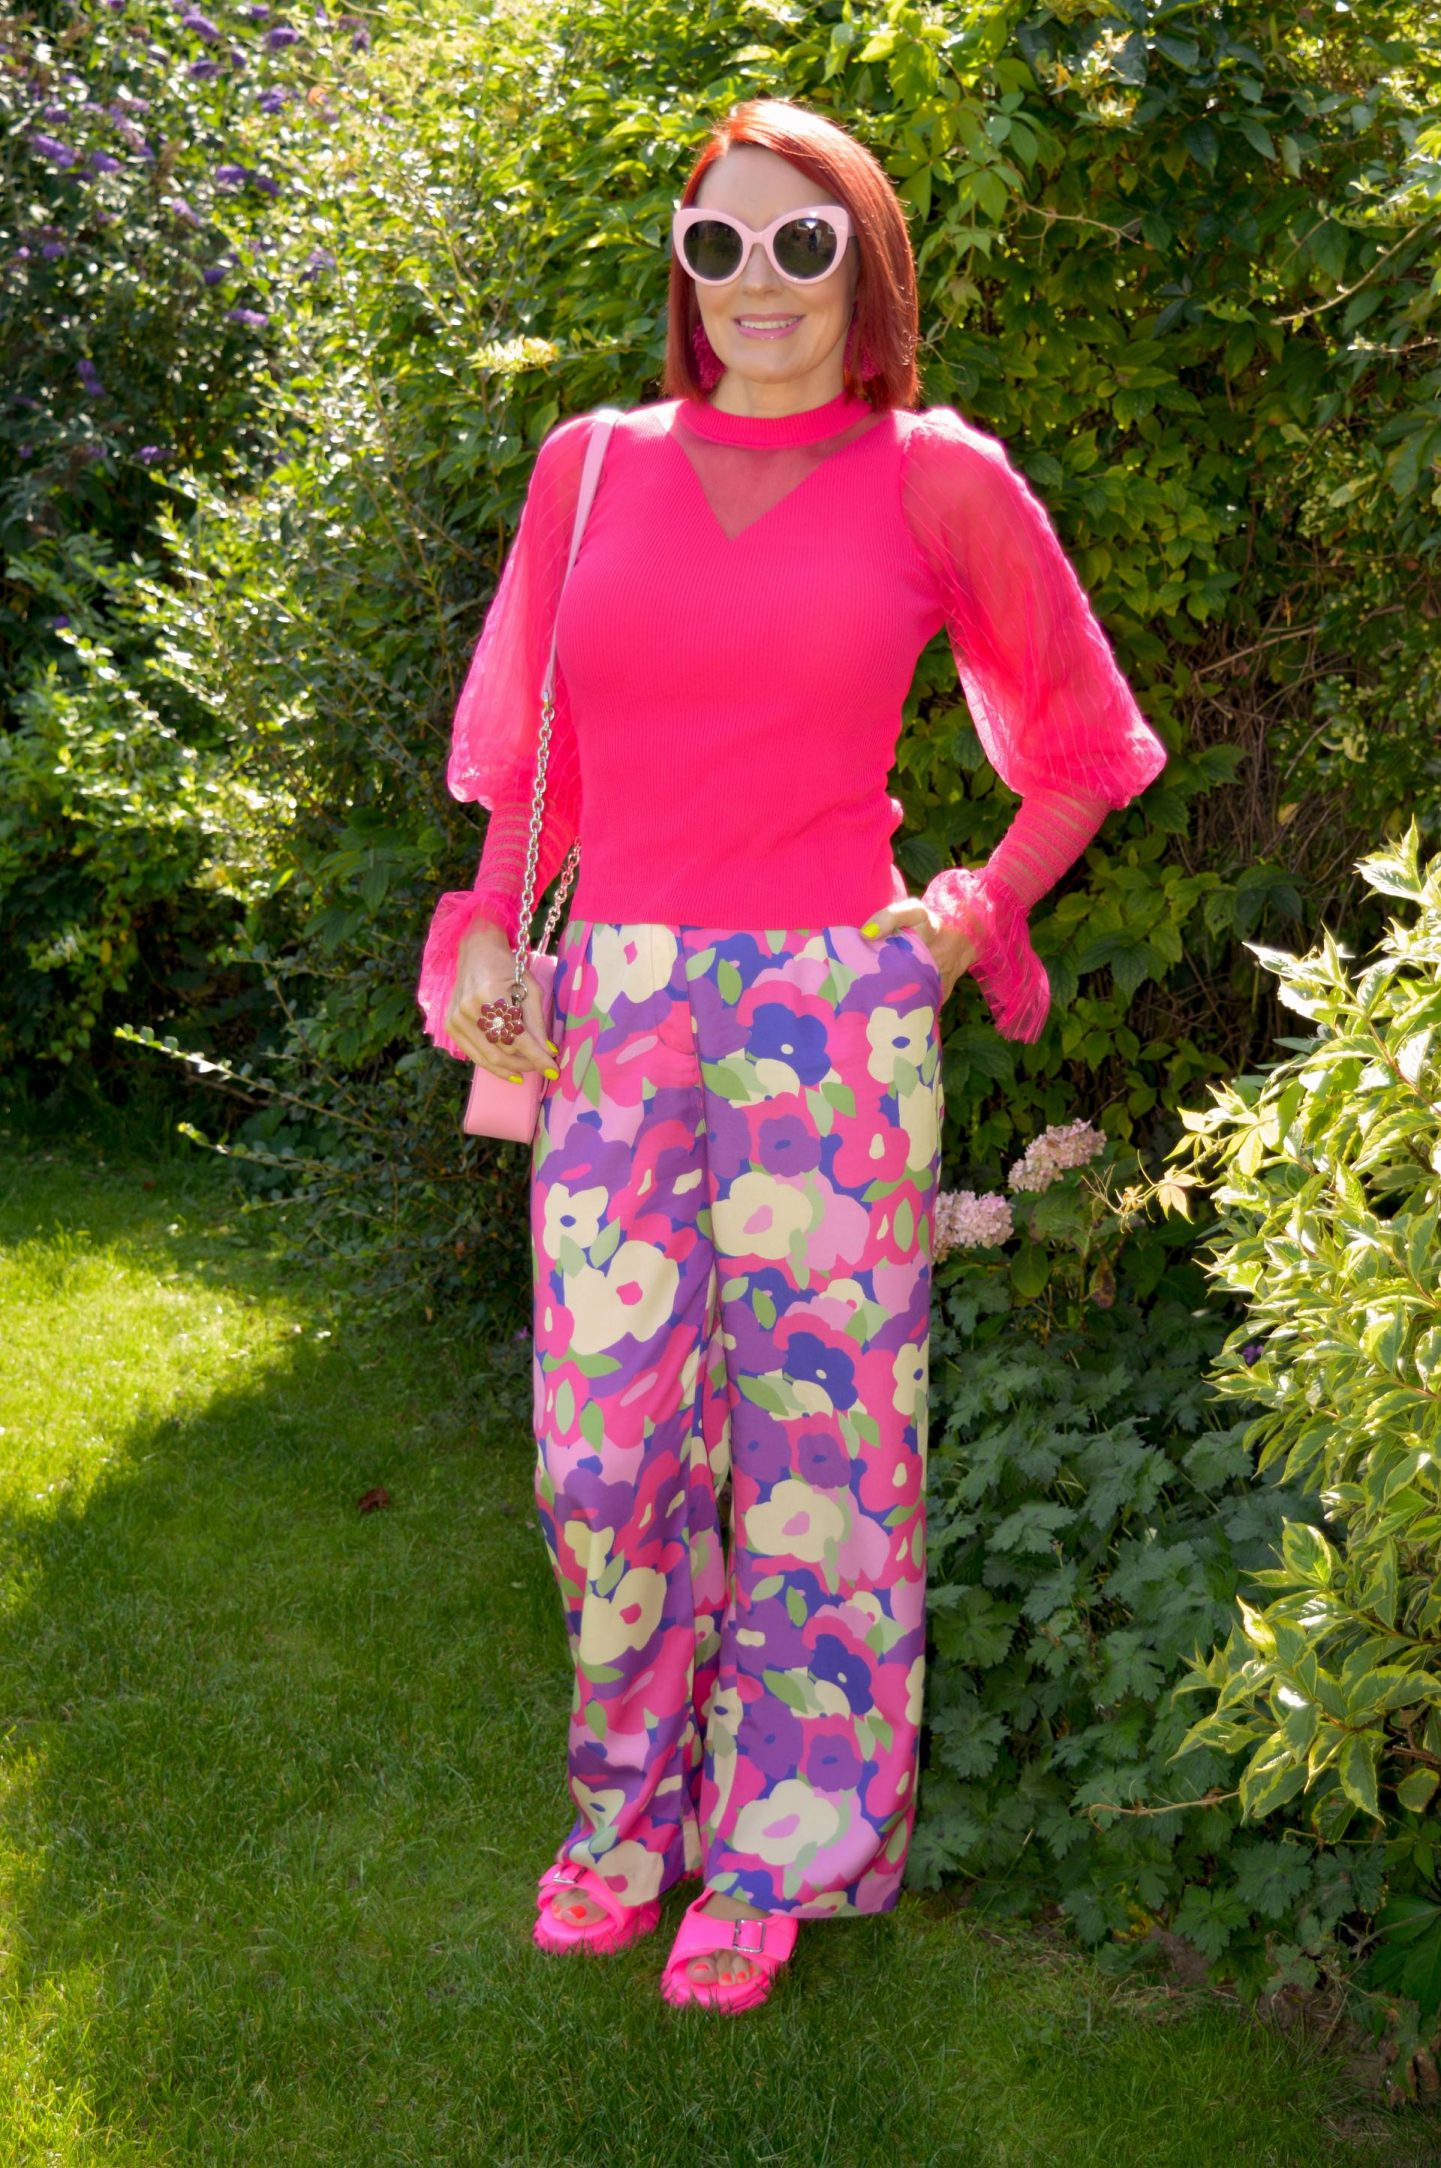 Styling Our Statement Sleeves - August's Style Not Age, River Island pink sheer sleeve top, Monki purple print trousers, RIver Island pink cat eye sunglasses, Asos pink sporty mules, Nali pink camera bag